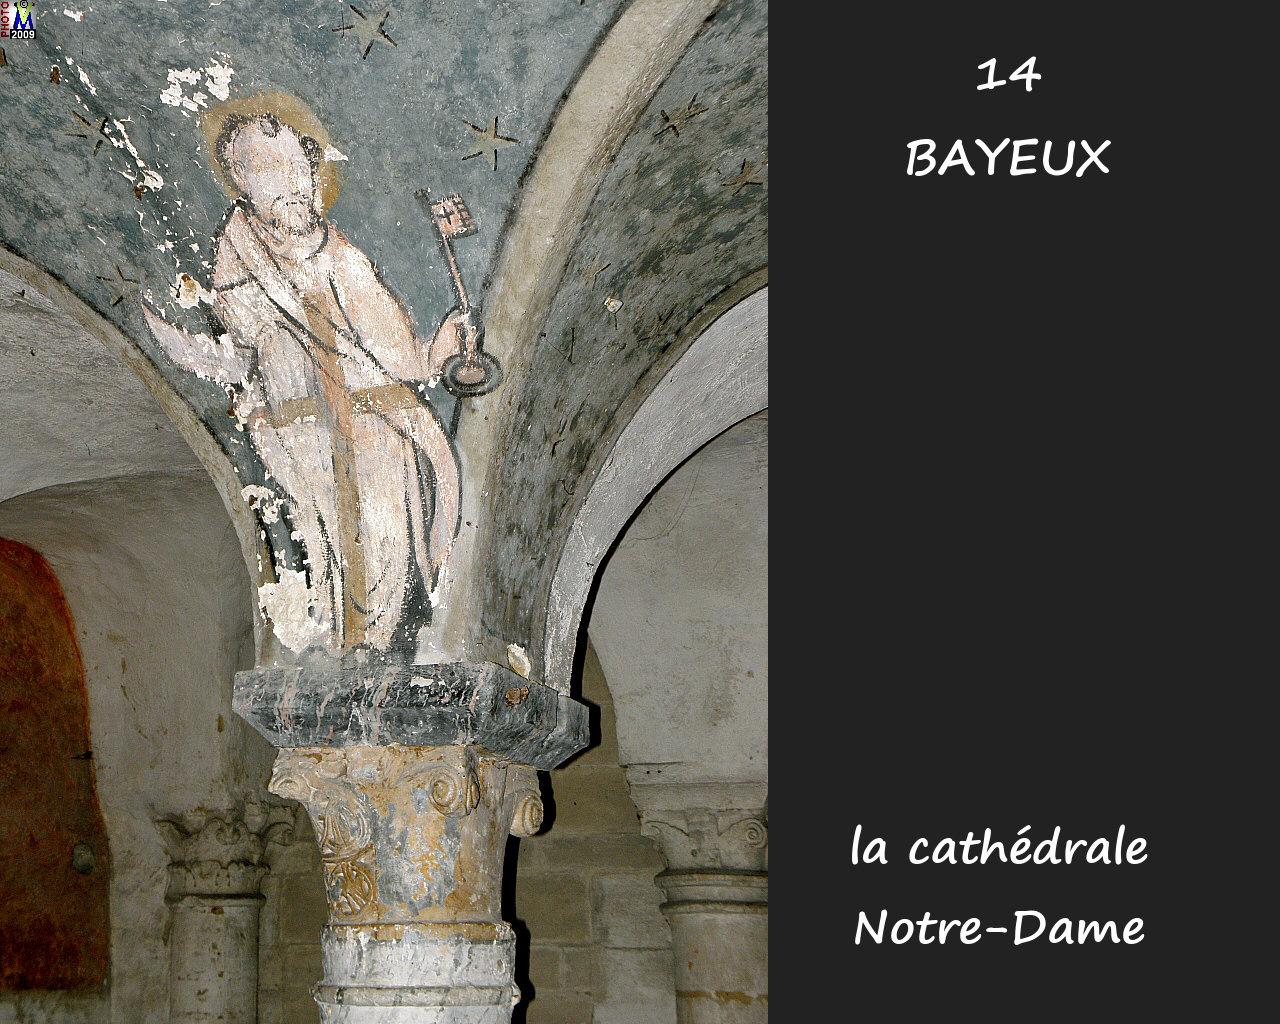 14BAYEUX_cathedrale_316.jpg